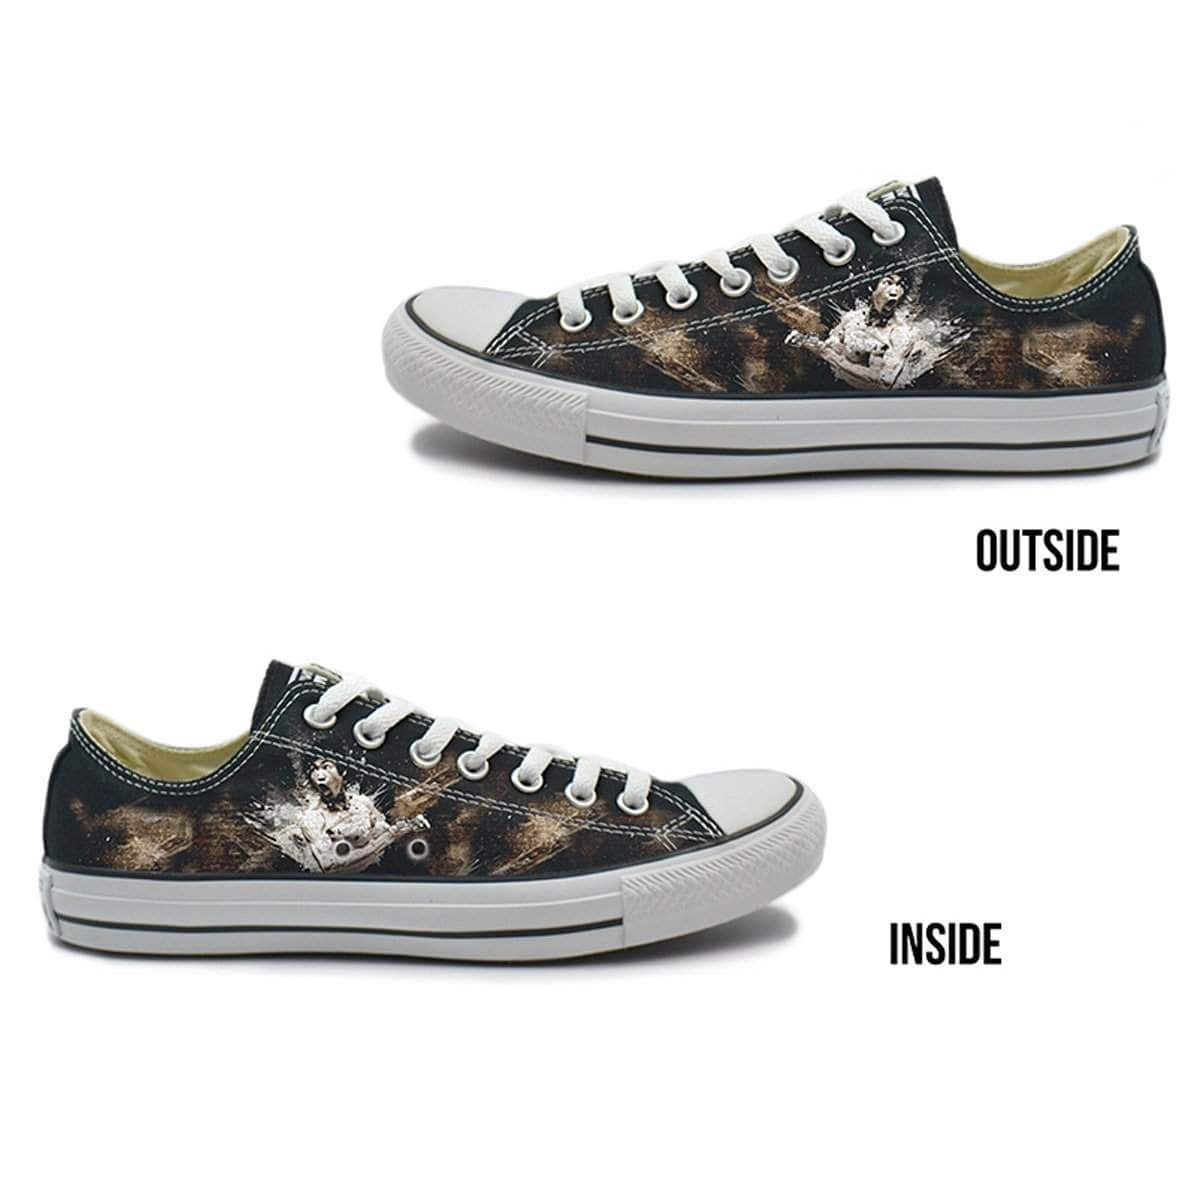 95679c8c532940 The Ave Shoe Breakthrough Converse Chuck Taylor All Star Low Top Sneakers  ...